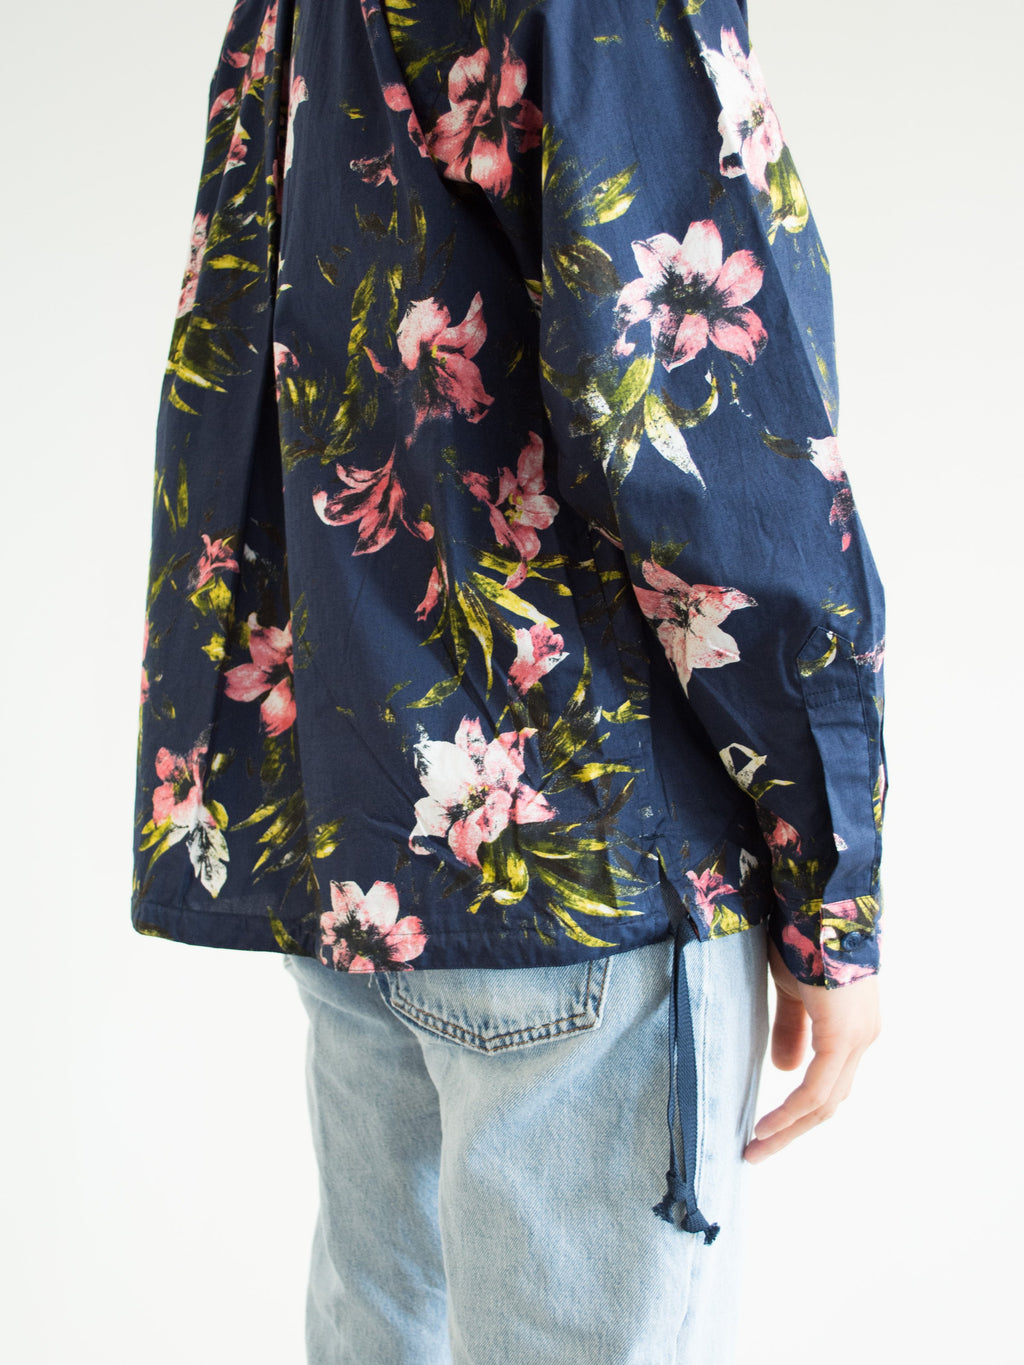 Namu Shop - Niche Goteo Short Flower Shirt